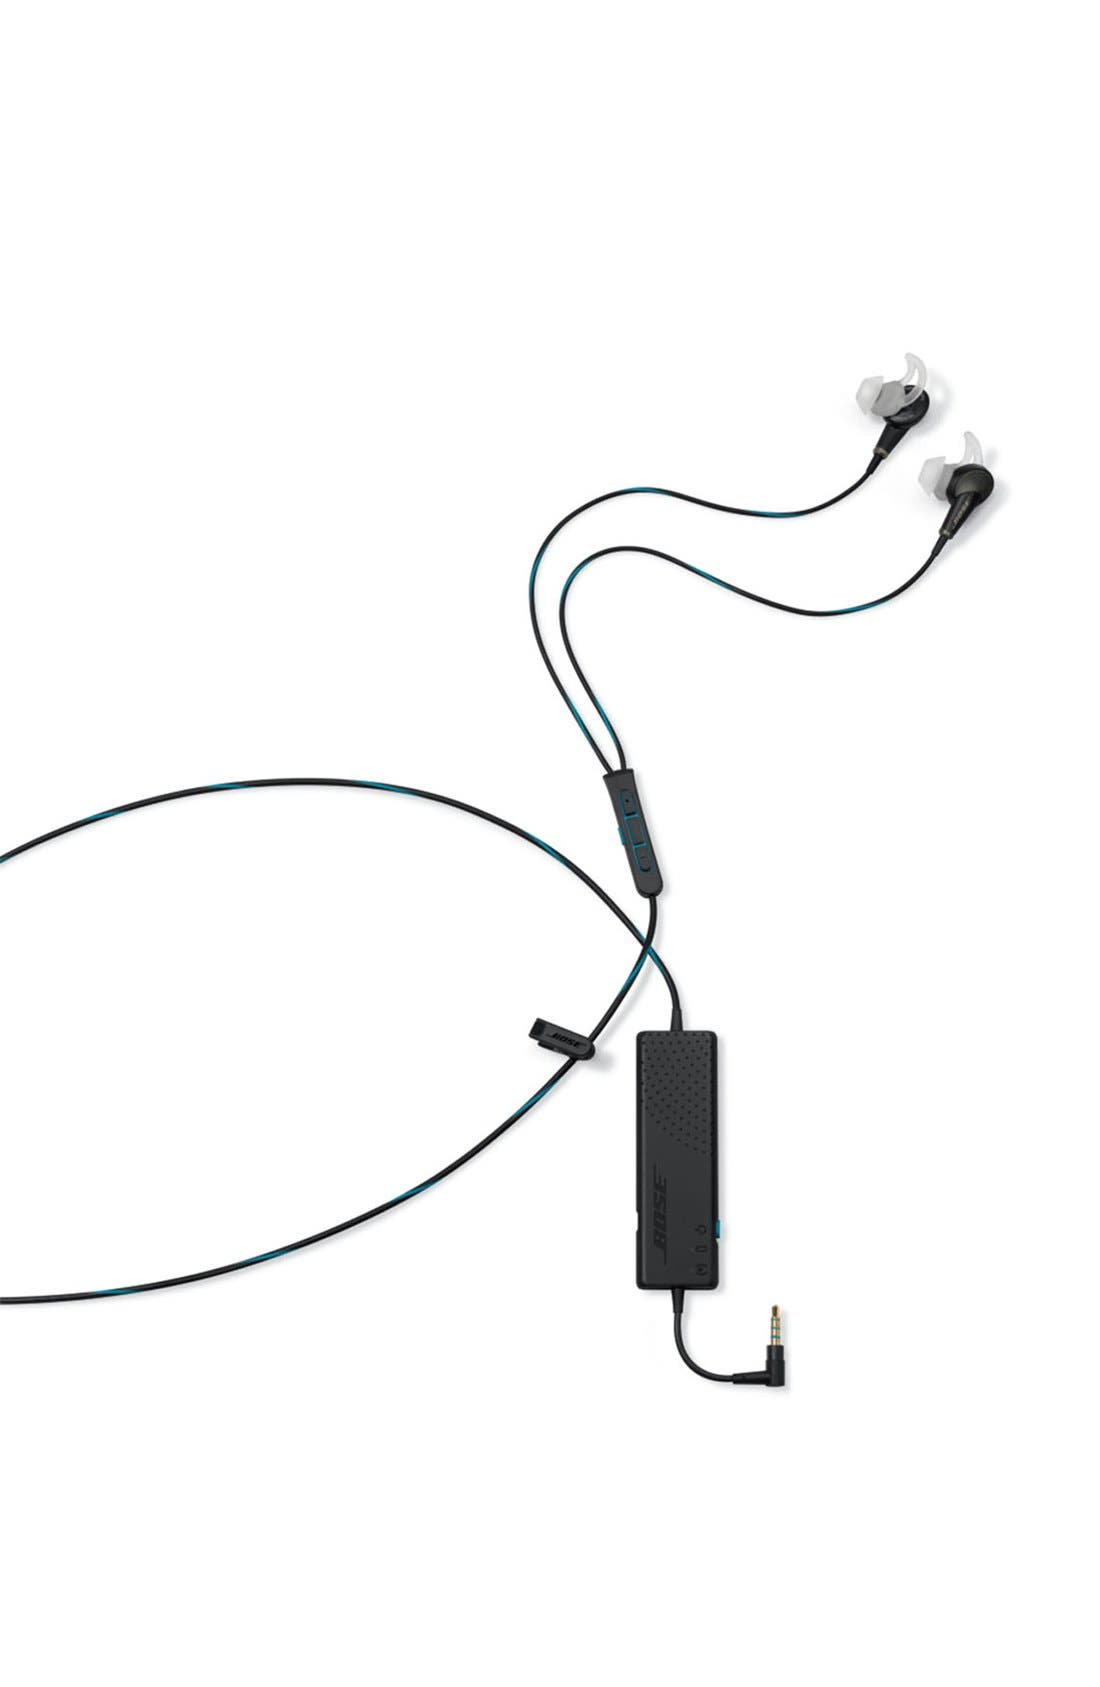 QuietComfort<sup>®</sup> 20 Acoustic Noise Cancelling<sup>®</sup> Headphones,                             Alternate thumbnail 2, color,                             001